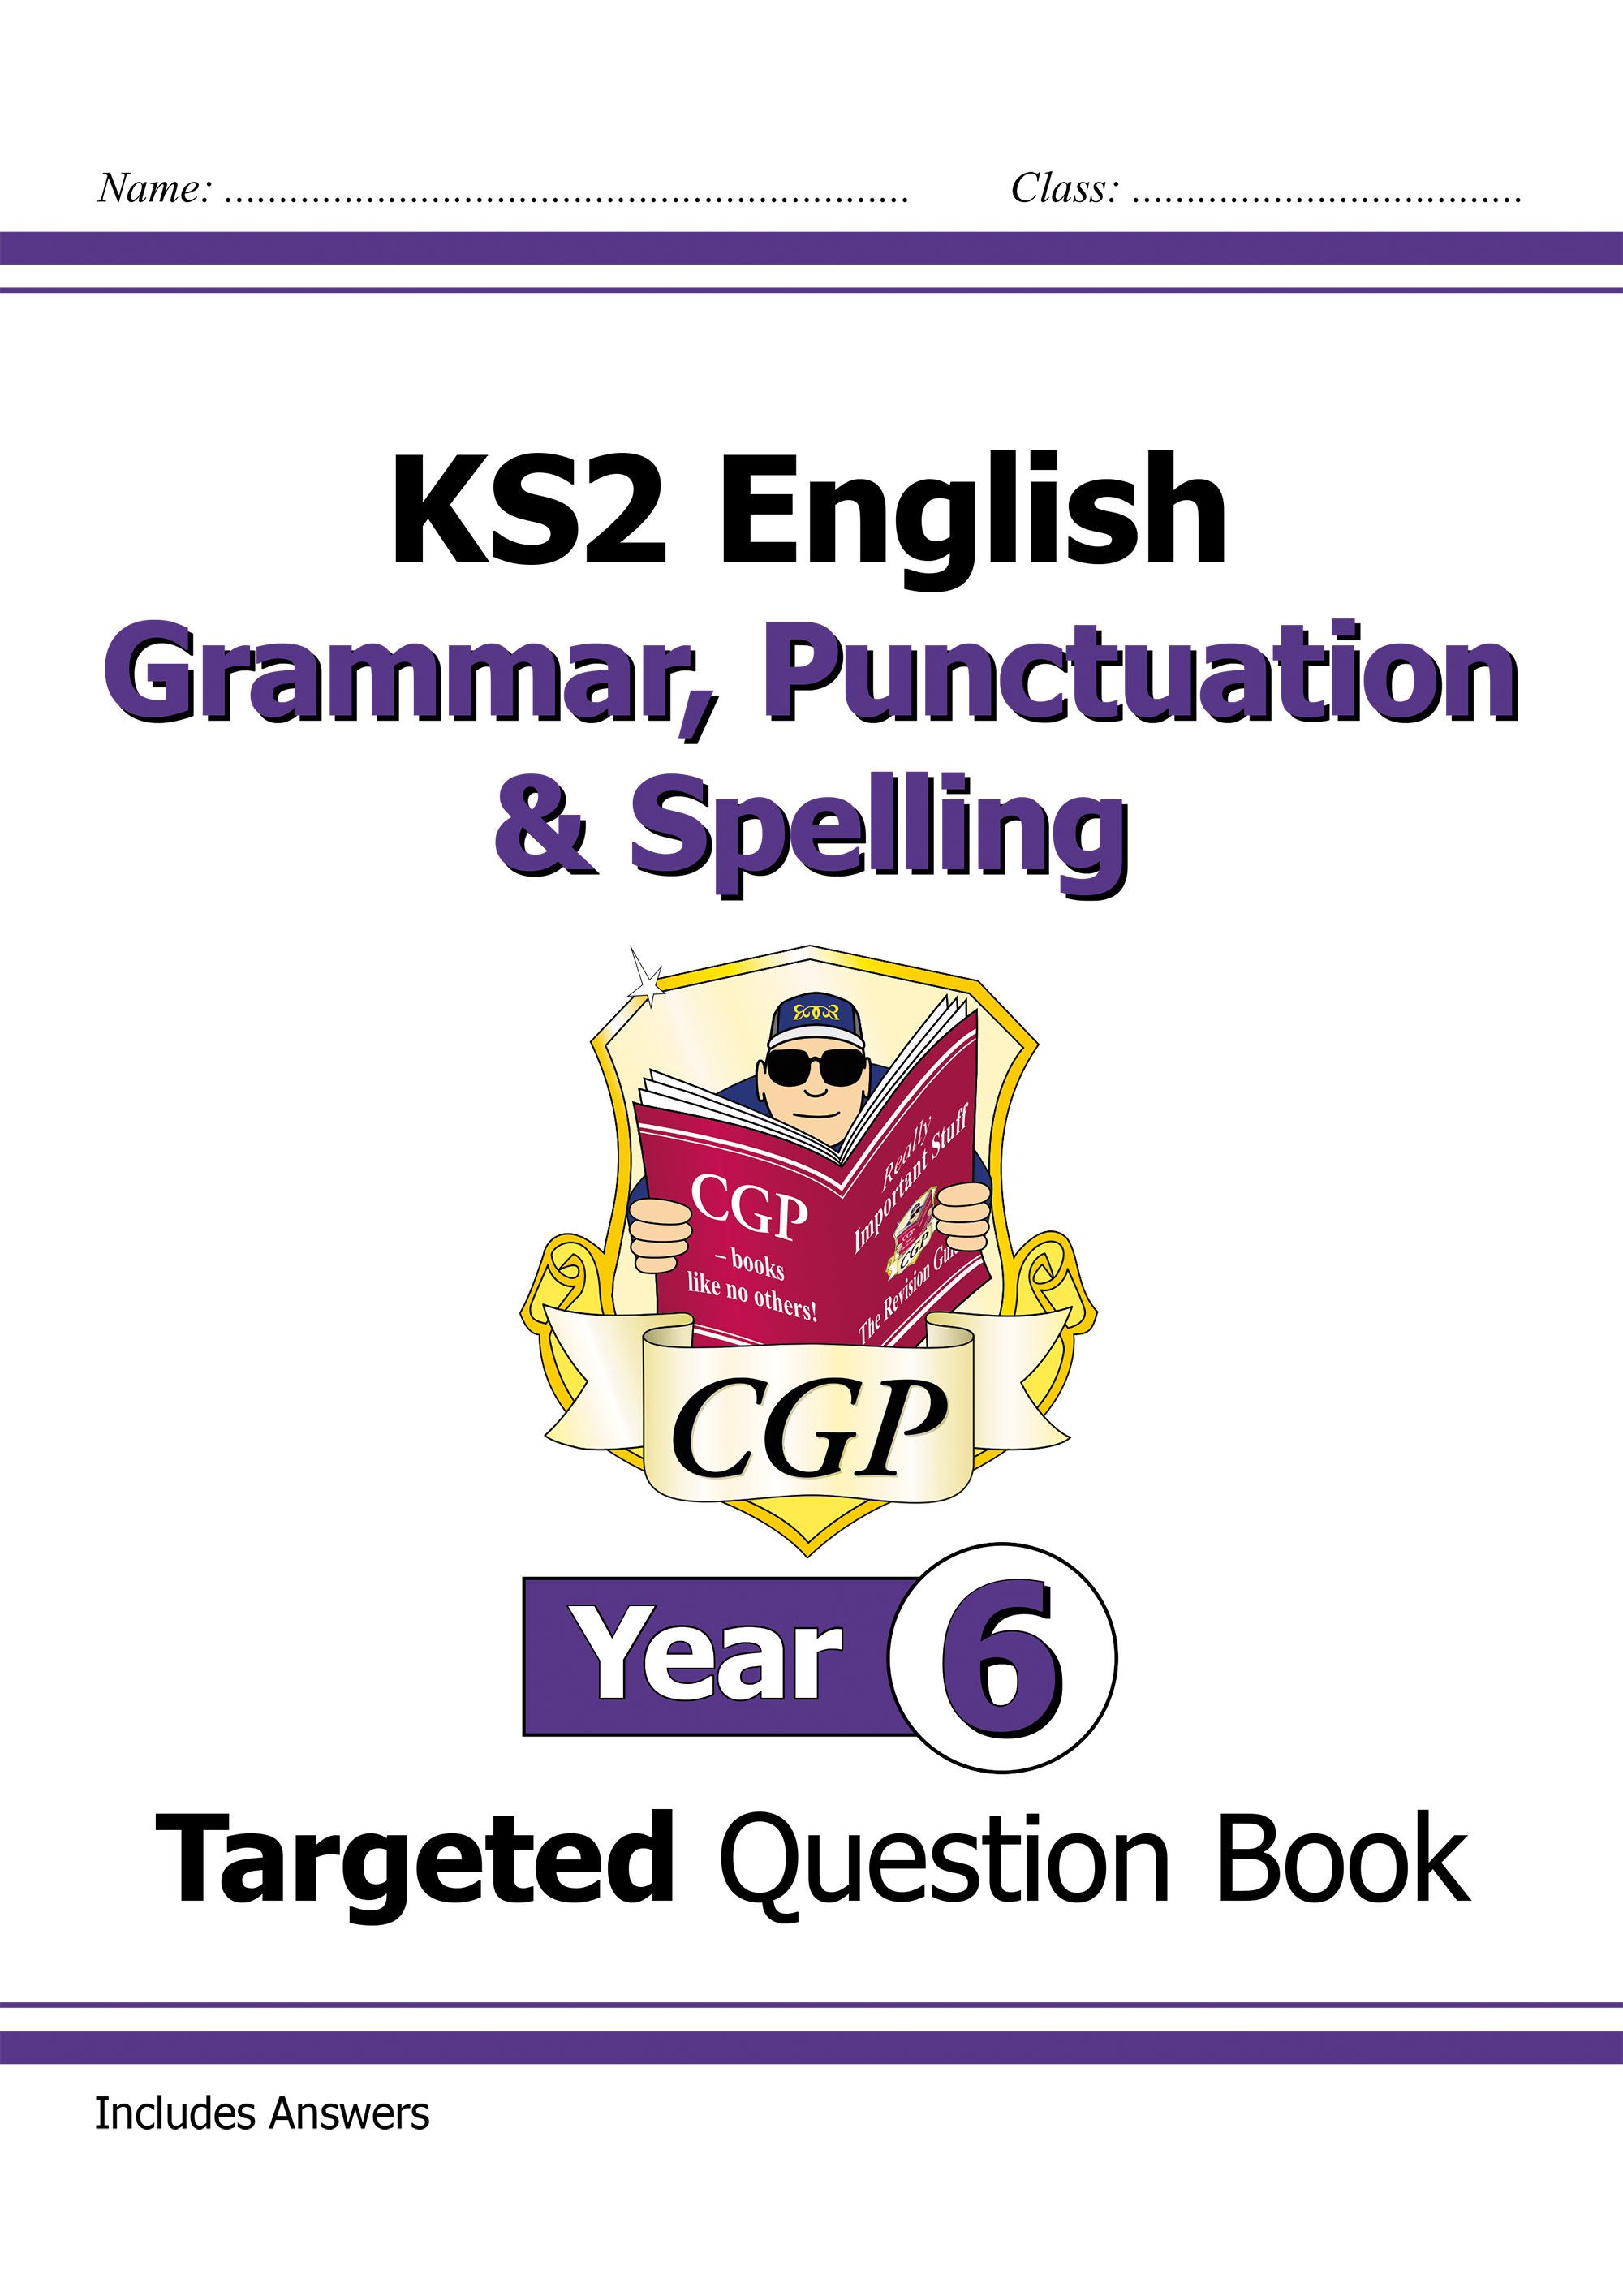 E6W22D - KS2 English Targeted Question Book: Grammar, Punctuation & Spelling - Year 6 Online Edition